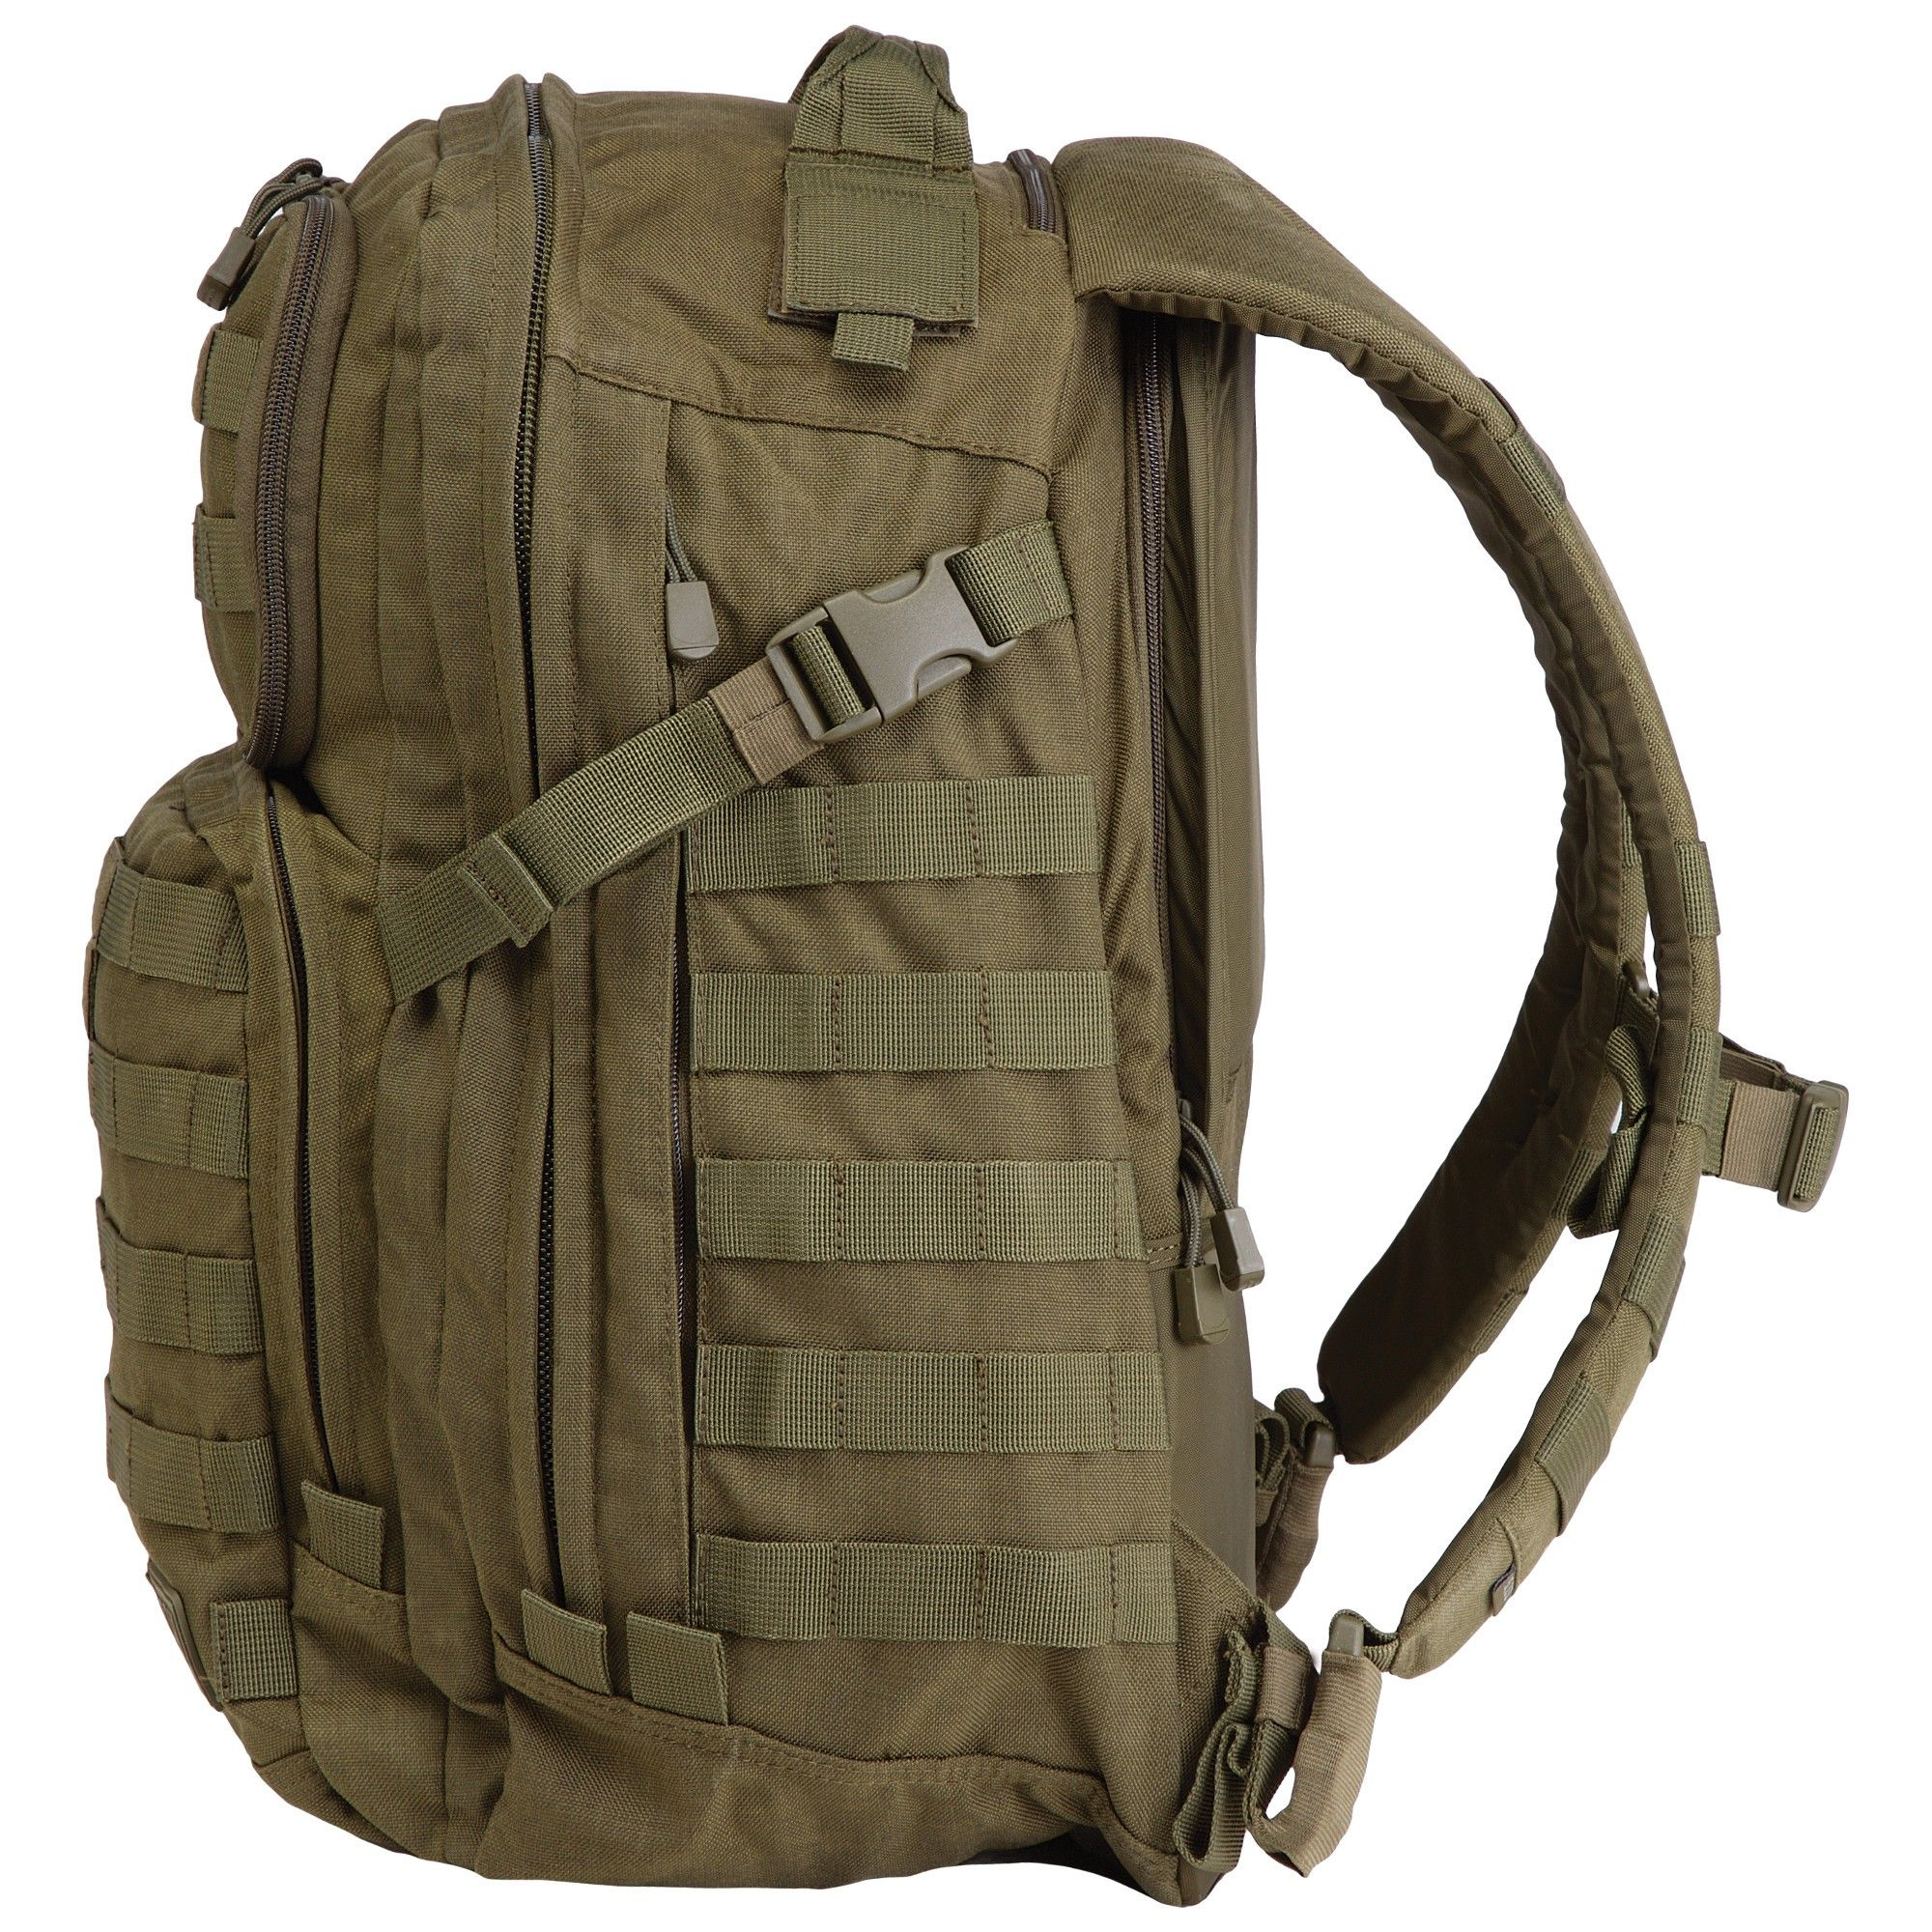 d95f681a2de1f 5.11 Tactical RUSH 24 Tactical Backpack in Military Green